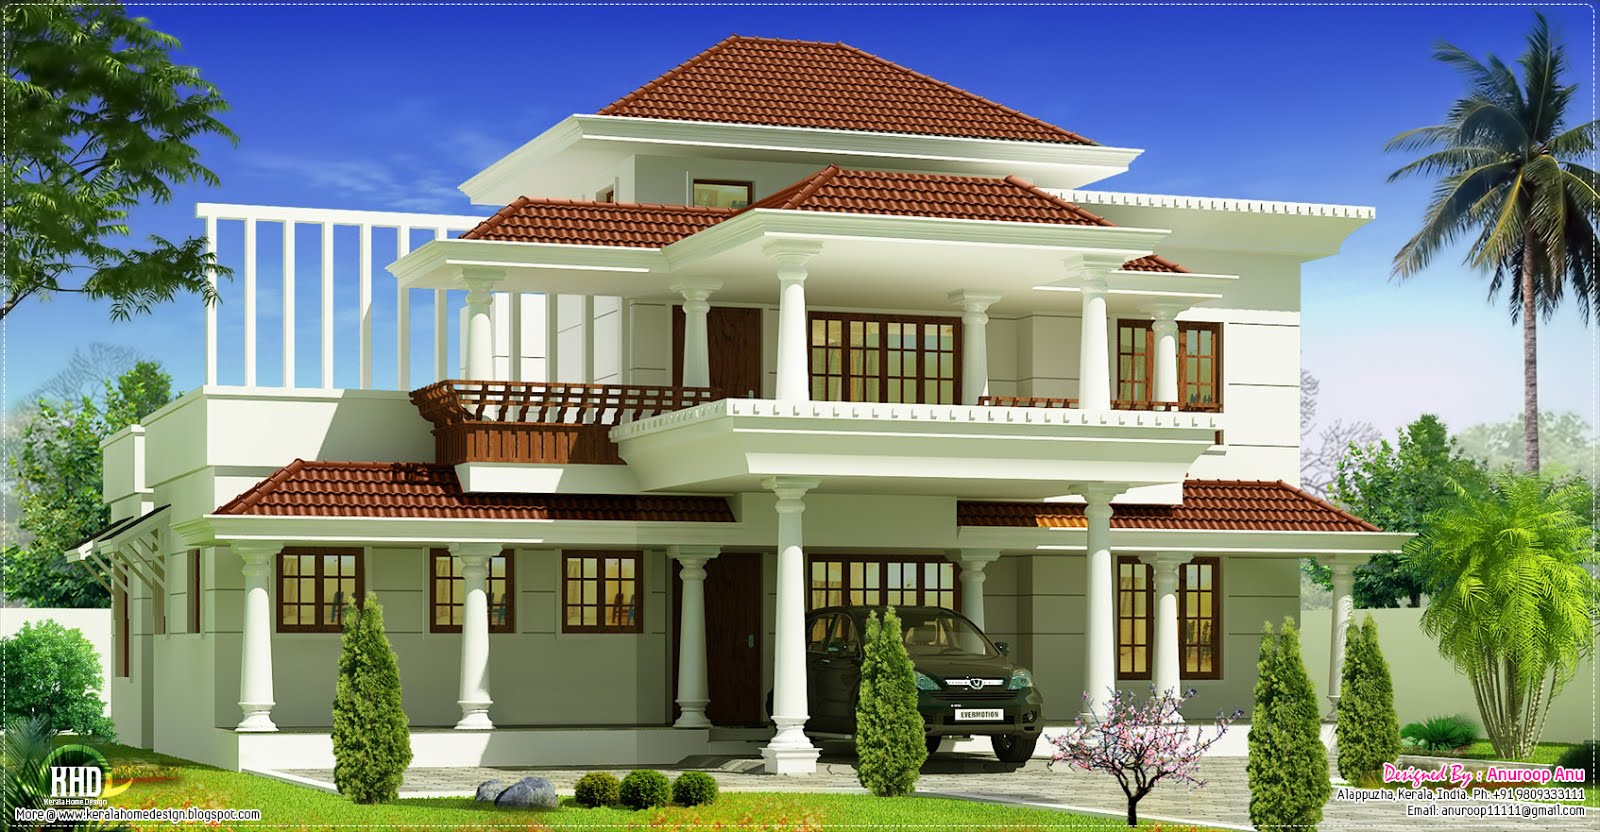 Kerala house models houses plans designs for New home design in kerala